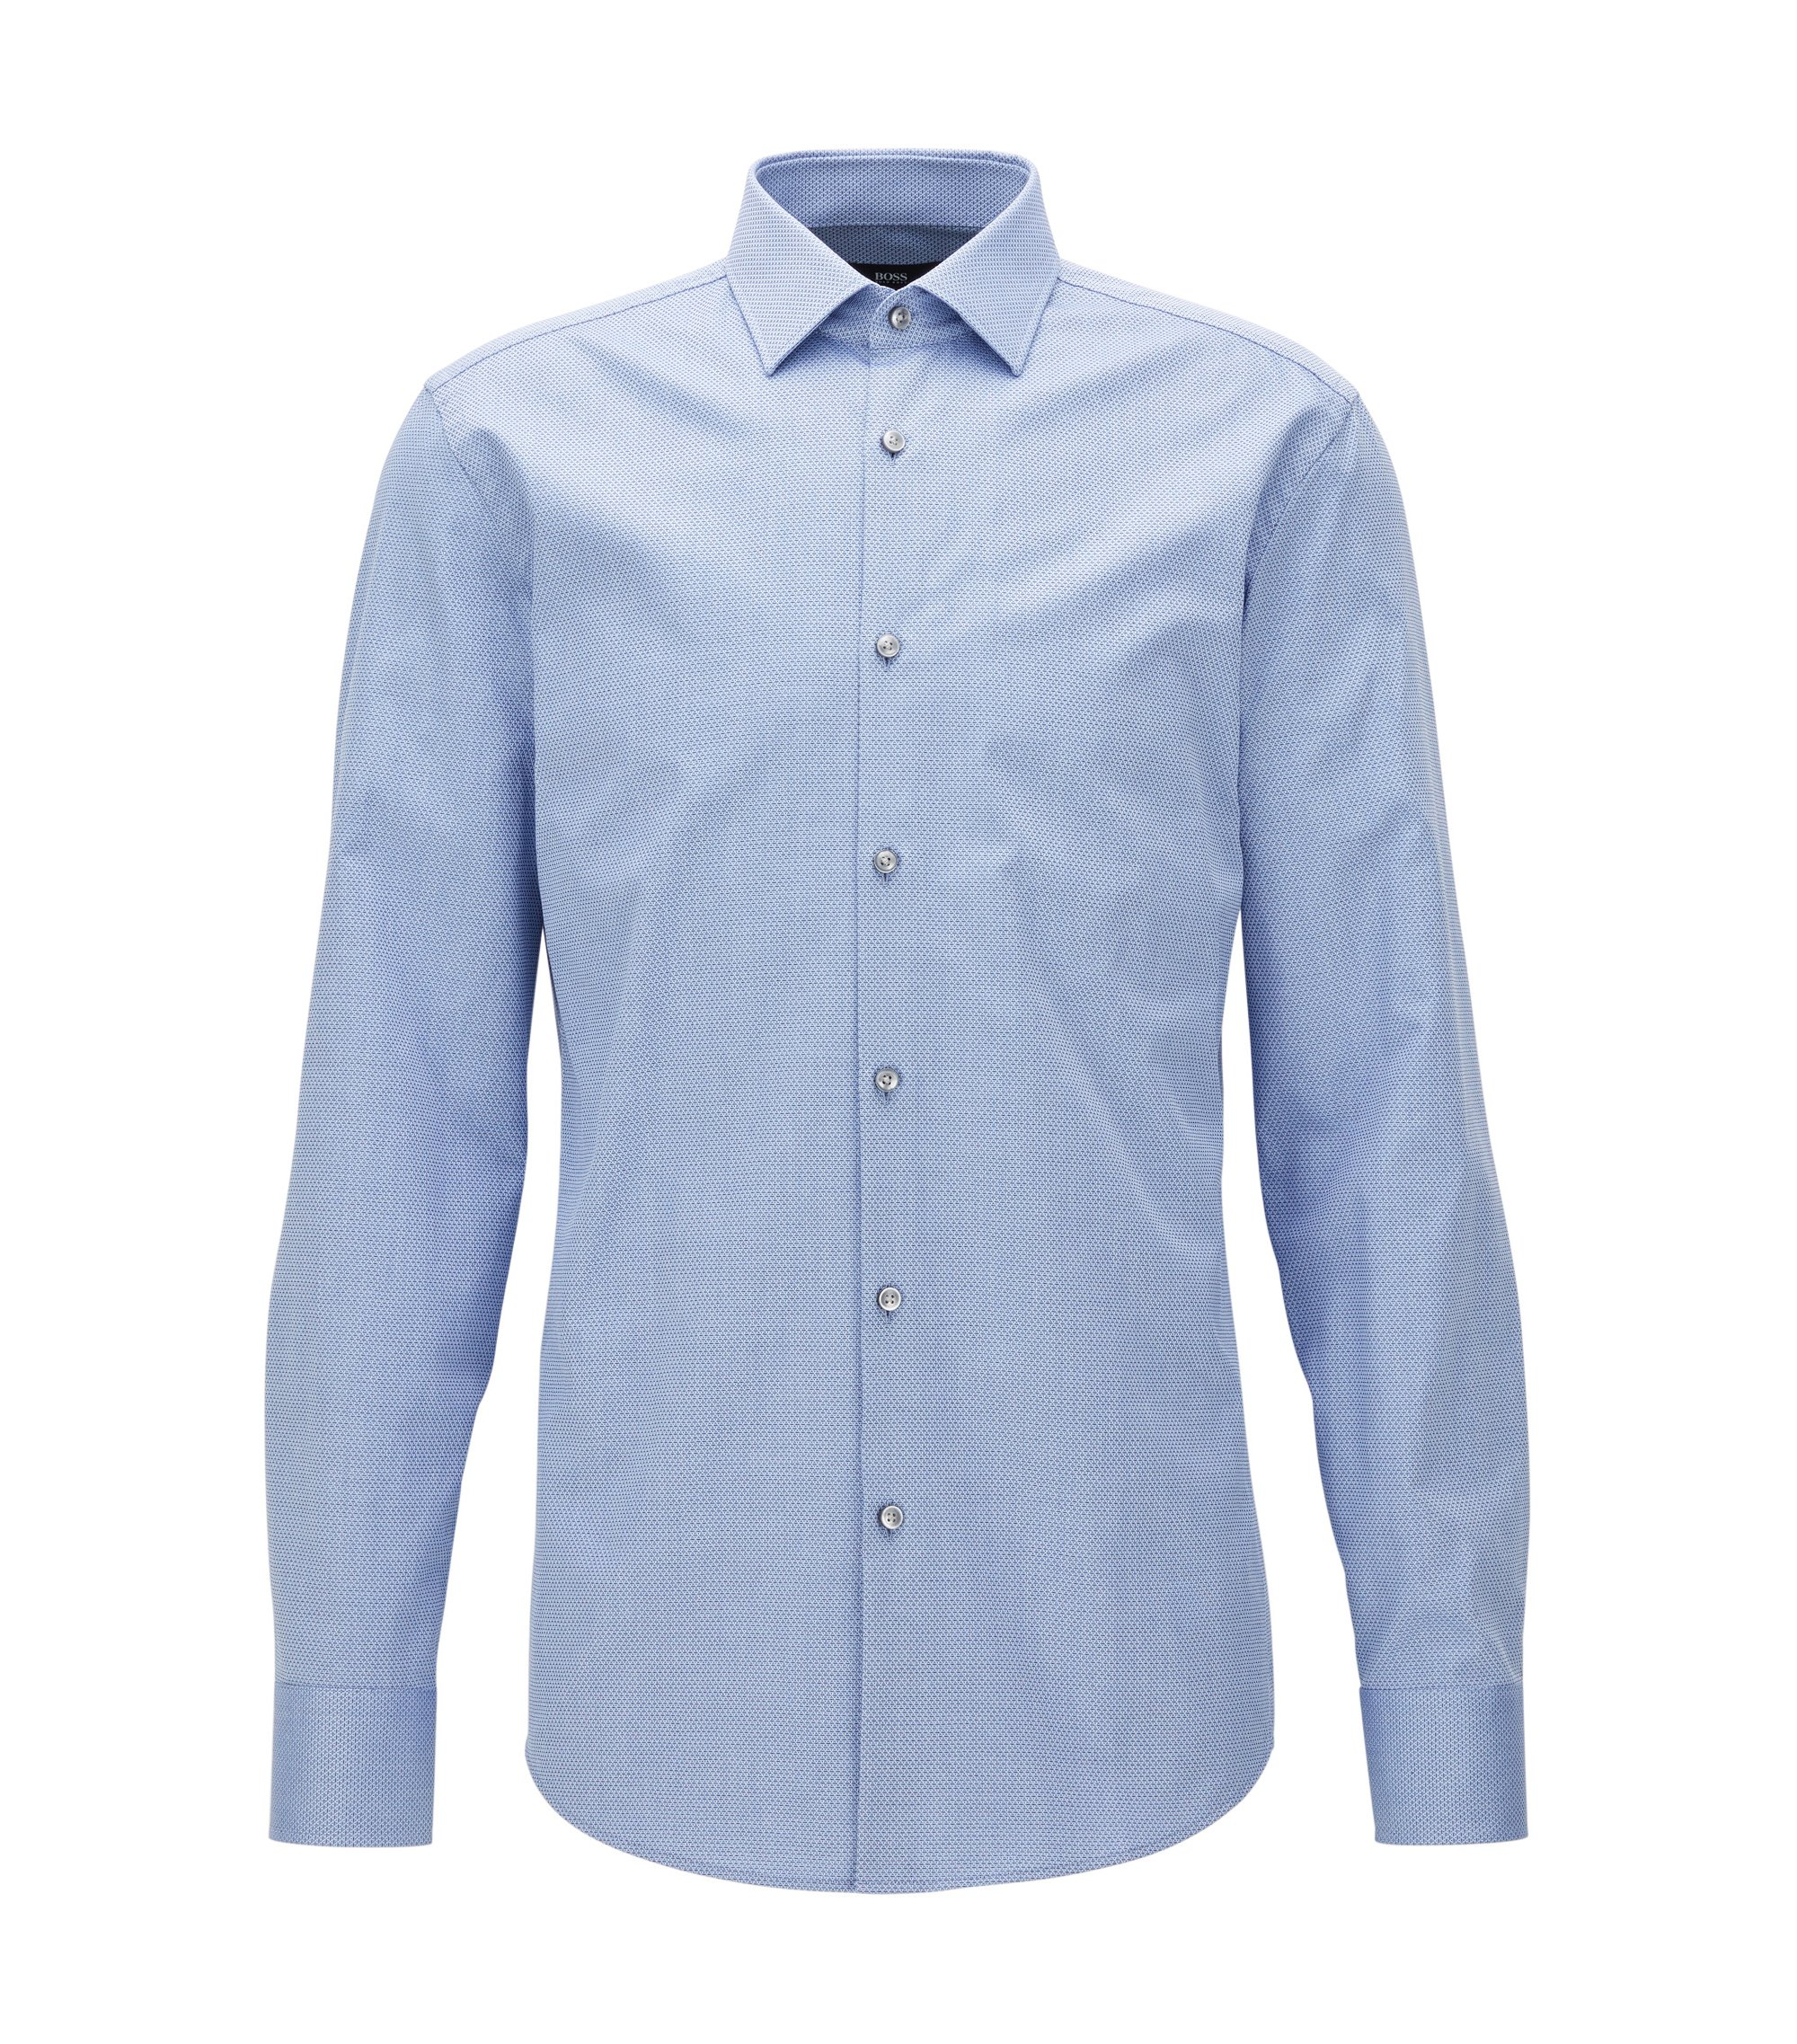 Diamond Print Cotton Dress Shirt, Slim Fit | Jenno, Light Blue